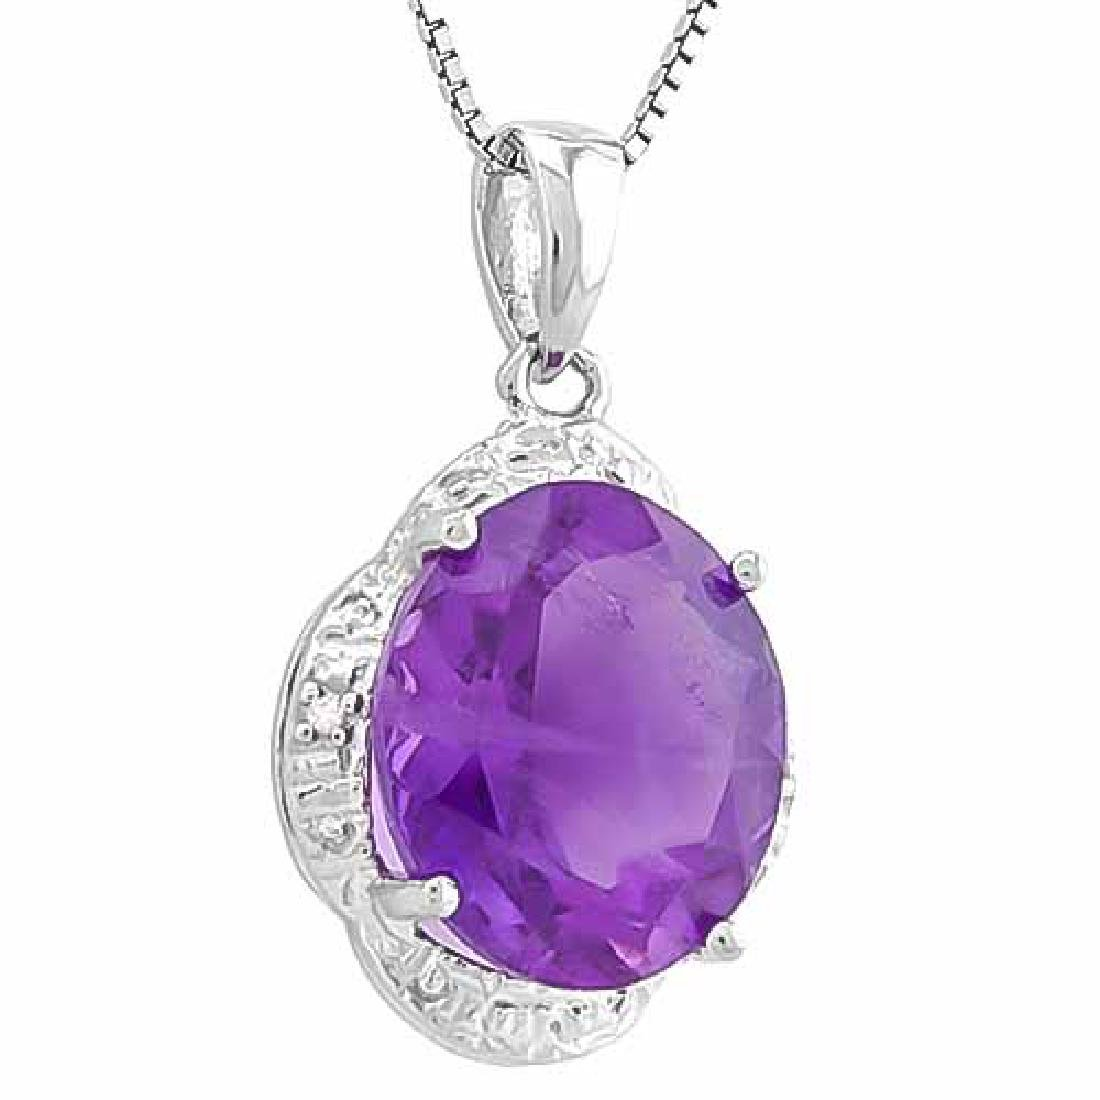 4 1/3 CARAT AMETHYST & DIAMOND 925 STERLING SILVER PEND